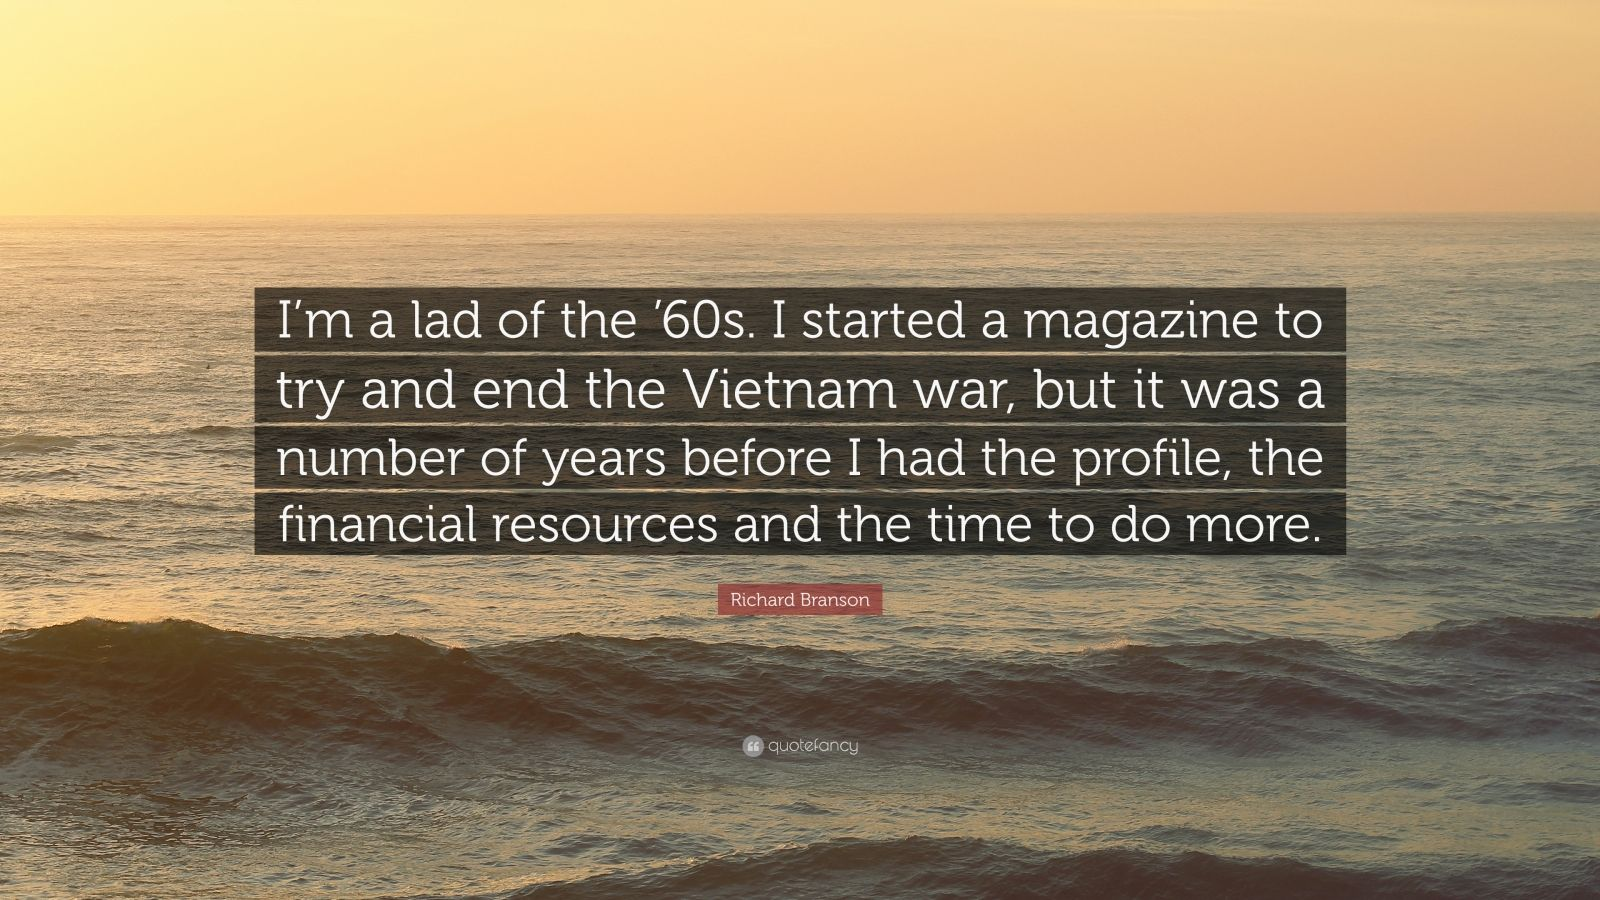 """Richard Branson Quote: """"I'm a lad of the '60s. I started a magazine to try and end the Vietnam war, but it was a number of years before I had the profile, the financial resources and the time to do more."""""""